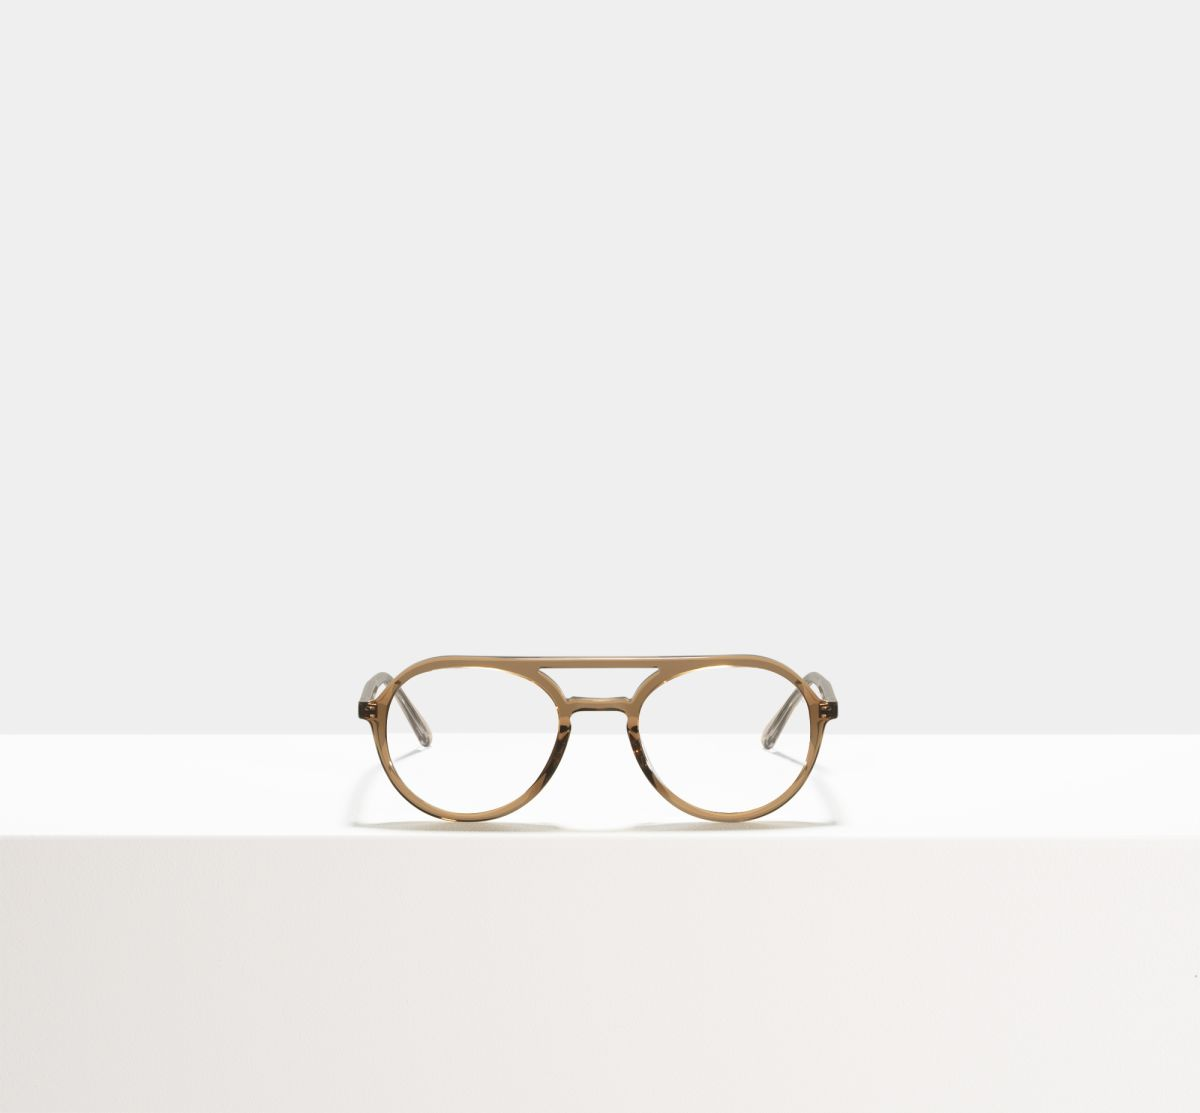 Paul round acetate glasses in Golden Brown by Ace & Tate